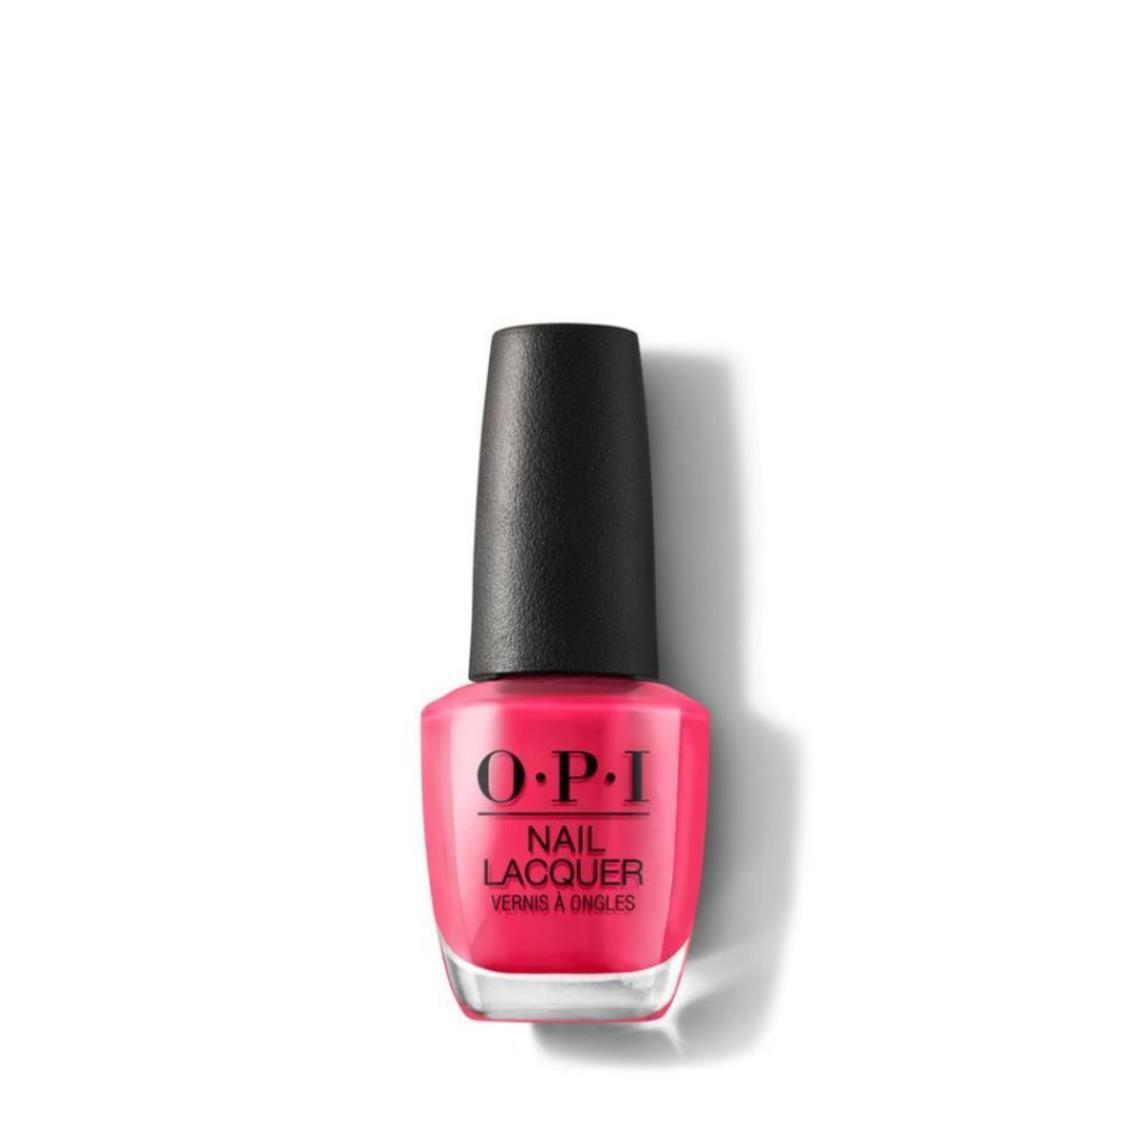 OPI Nail Lacquer Charged Up Cherry